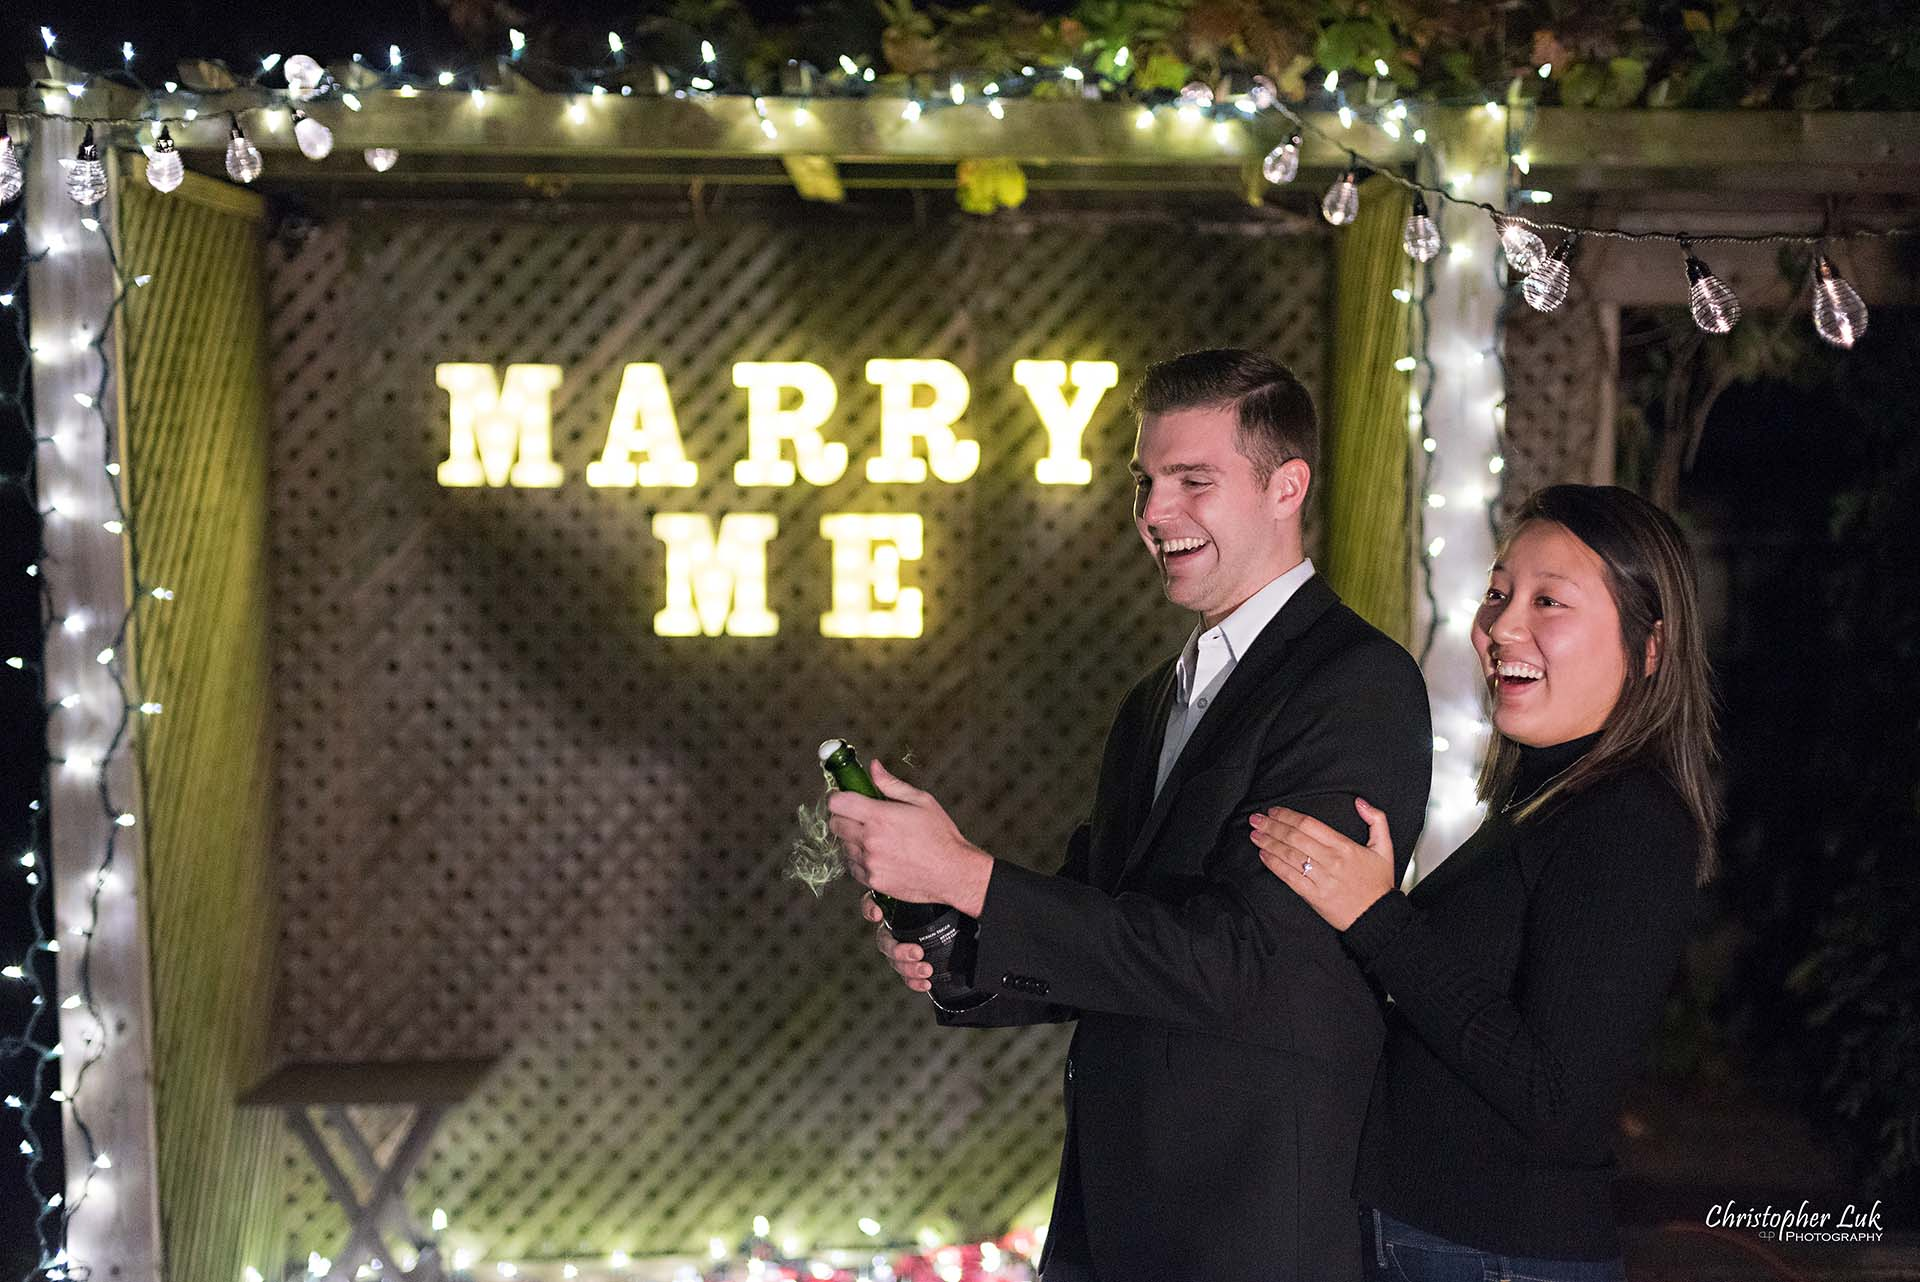 Christopher Luk Toronto Wedding Photographer - Backyard Surprise Proposal Engaged Engagement Gazebo Christmas Fairy Twinkle Lights Flower Petals Marry Me Natural Candid Photojournalistic - Bride and Groom Champagne